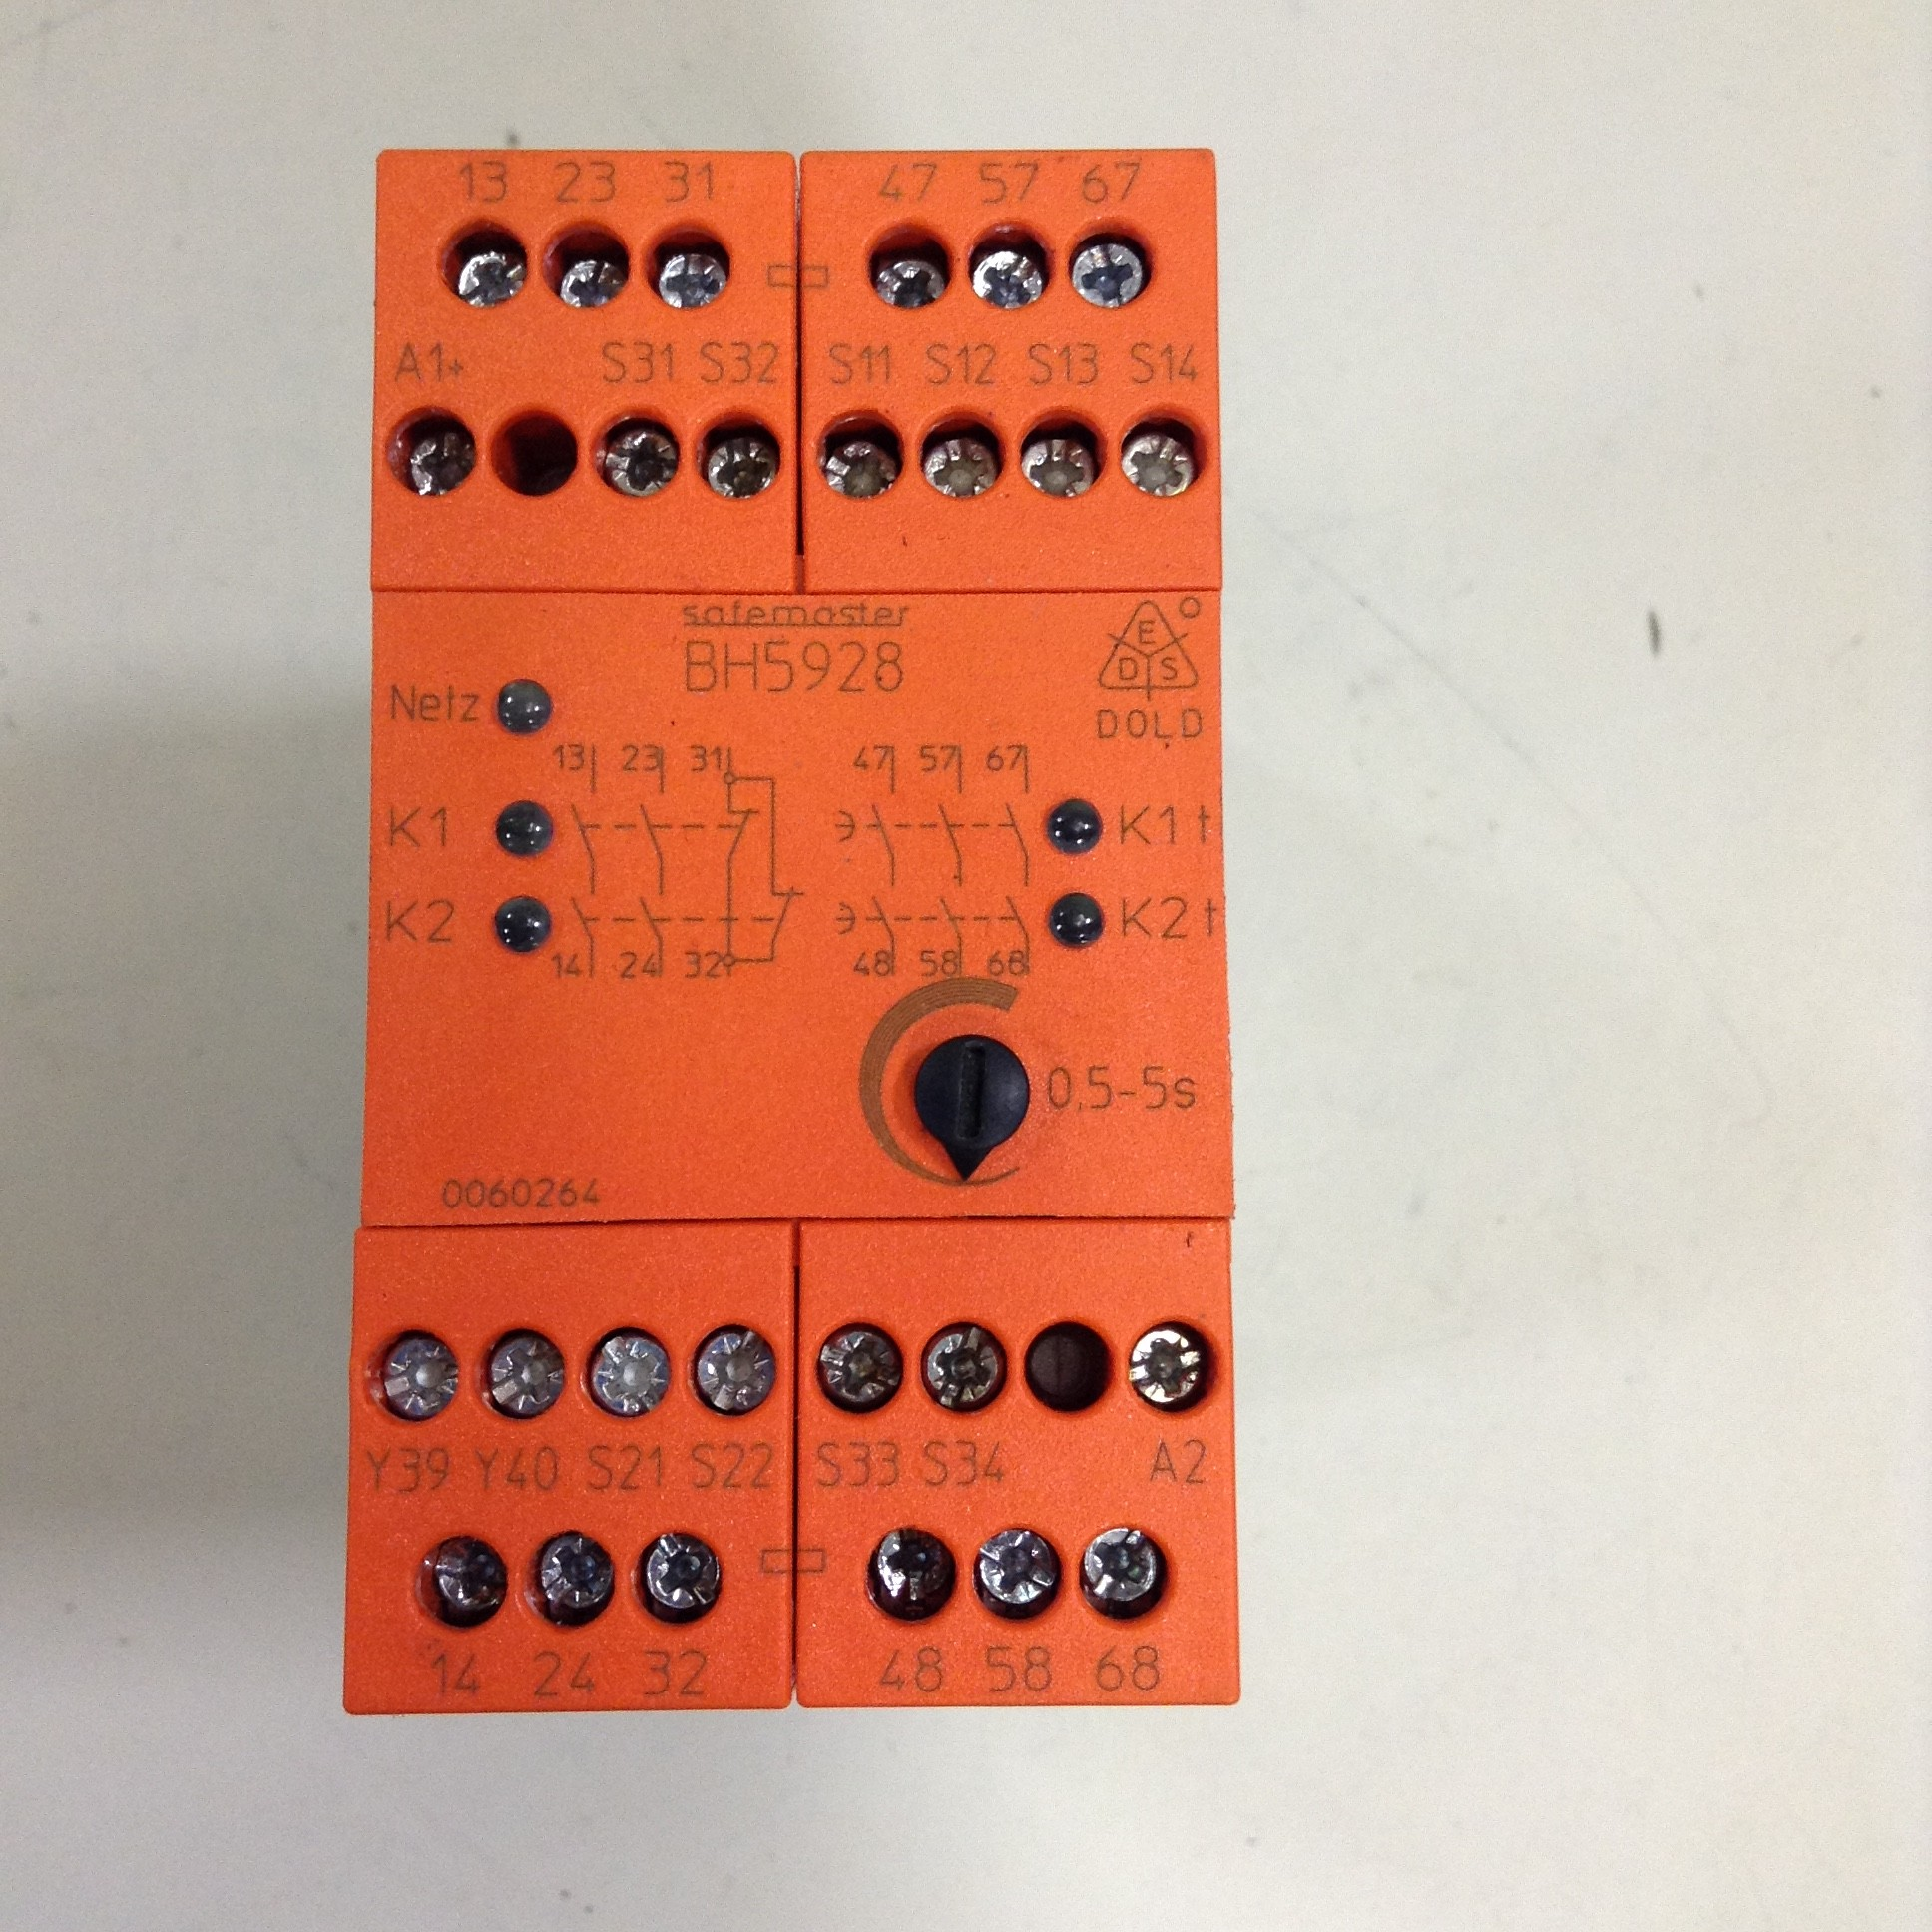 Details about E Dold & Sohne Kg Safety Relay BH5928 Used #83468